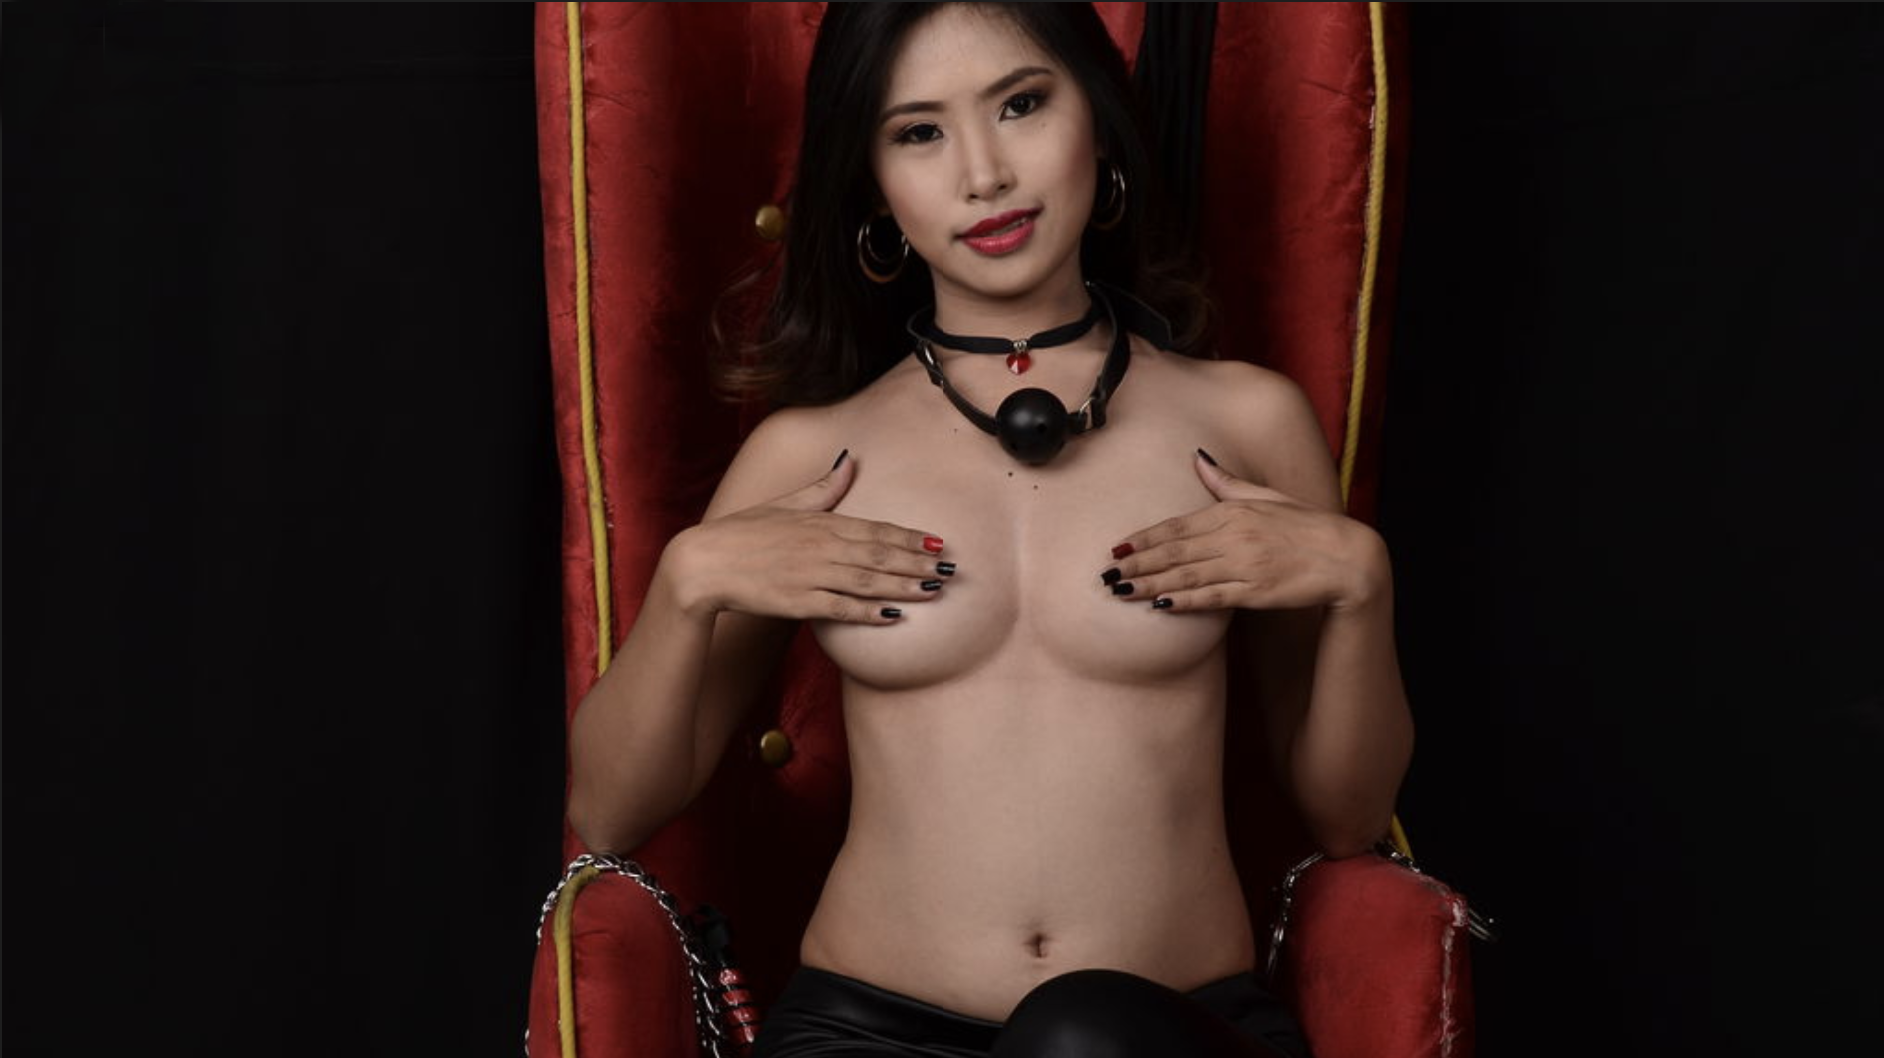 DirtyHottyAsian kinky Asian fetish cam model